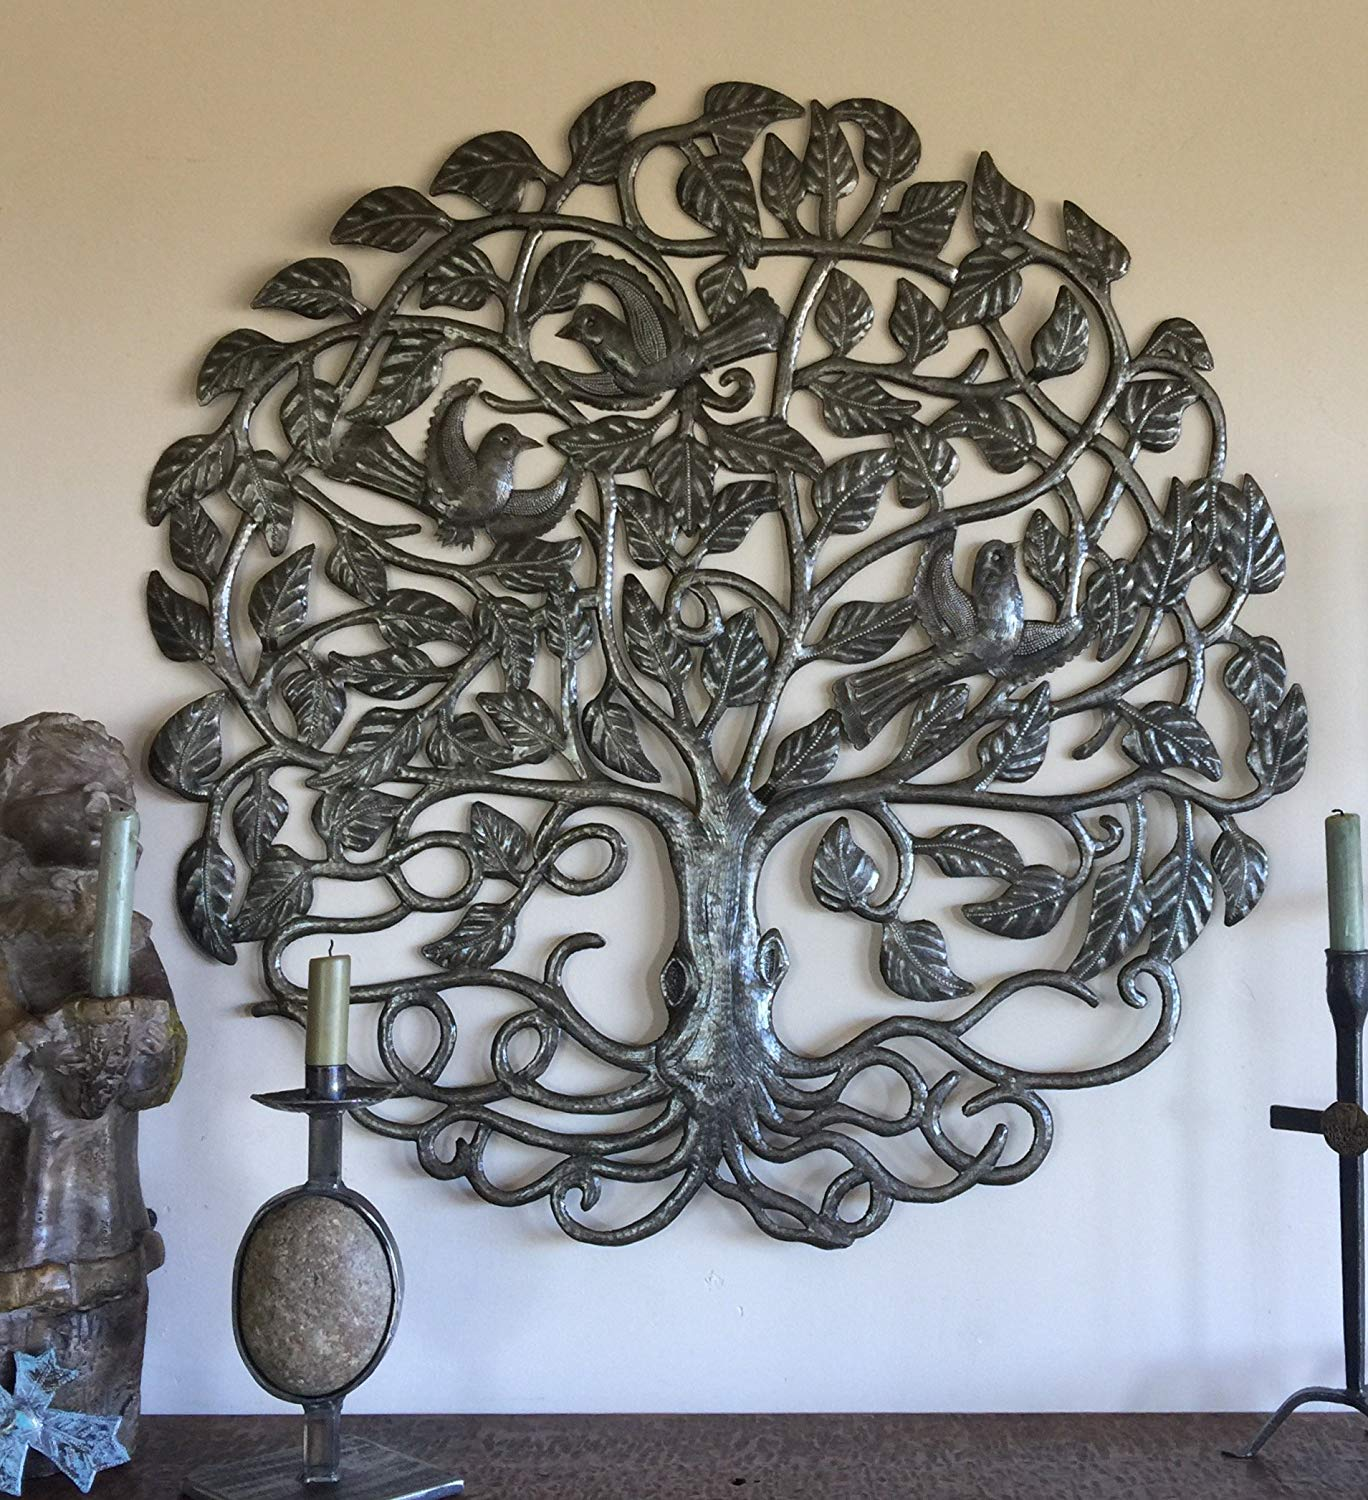 "Large Metal Tree of Life, Wall Hanging Sculpture from Haiti, No Machines Used, Handmade, Home Decor 32"" Round"